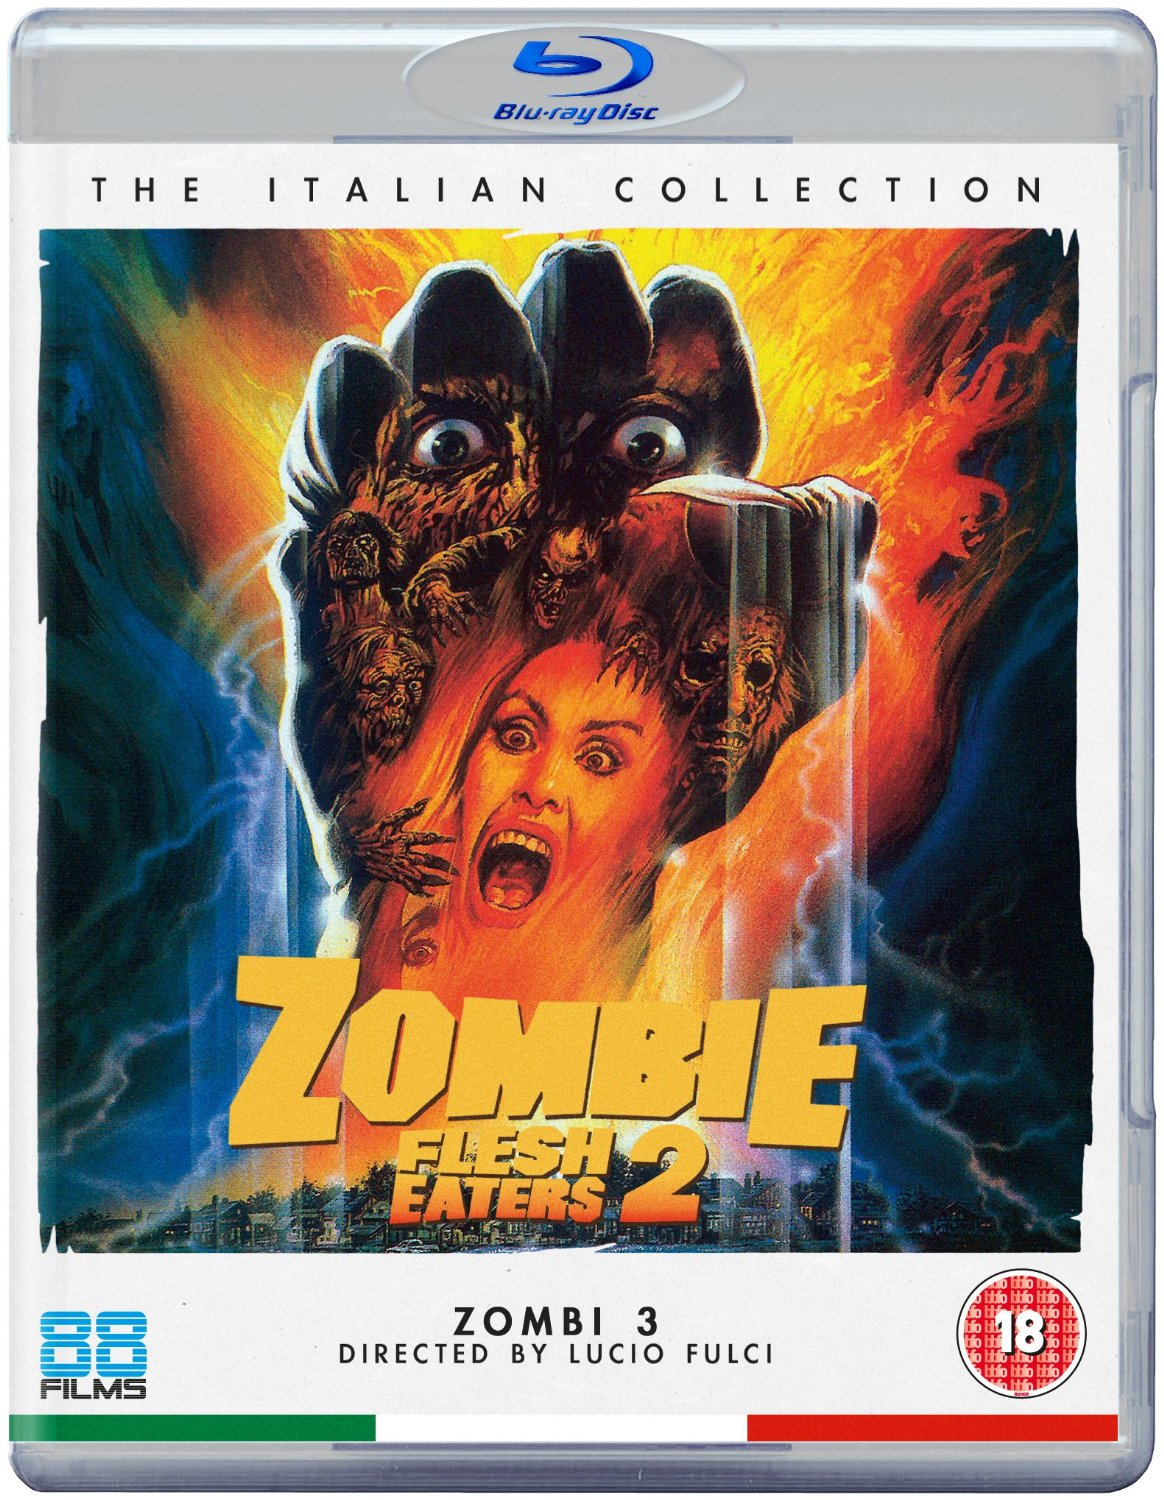 Zombie Flesh Eaters 2 Blu-ray review: Fulci's finest?